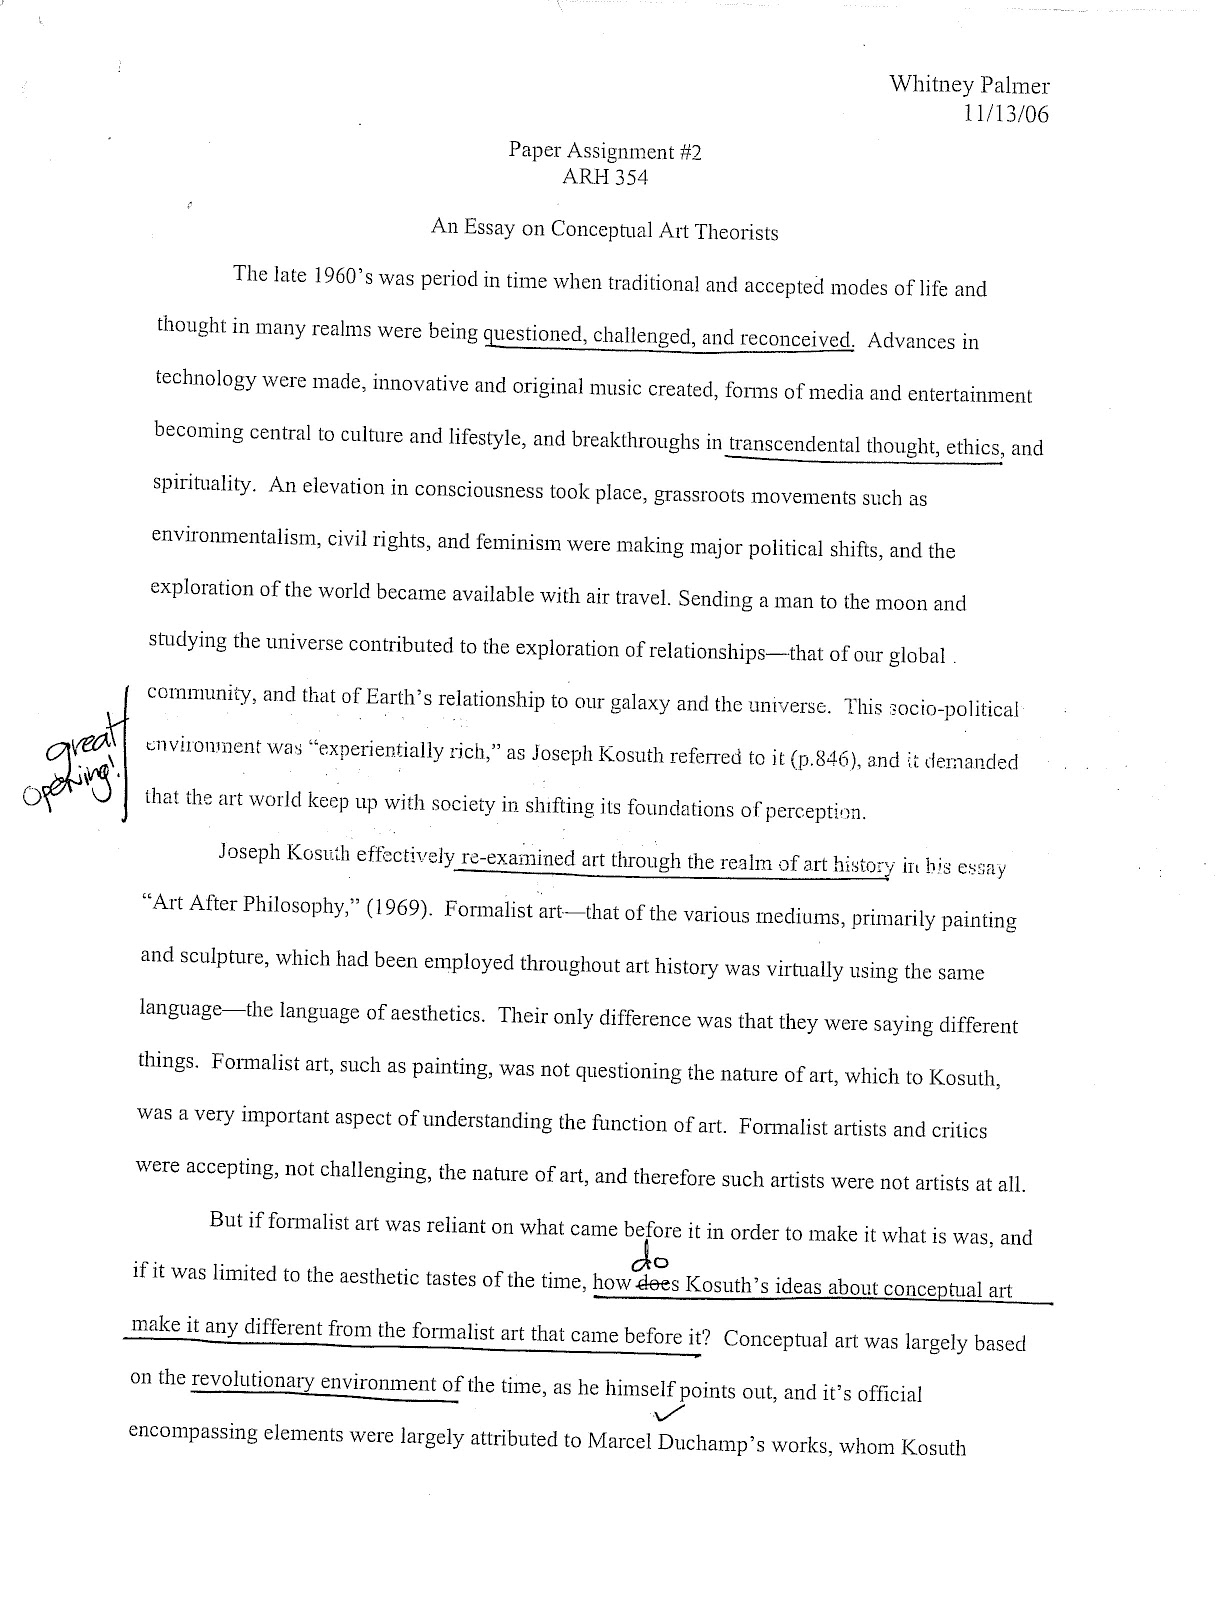 art history essays art history essays compucenter the aim of this essay from art history fall contemporary art post essay from art history fall contemporary art post